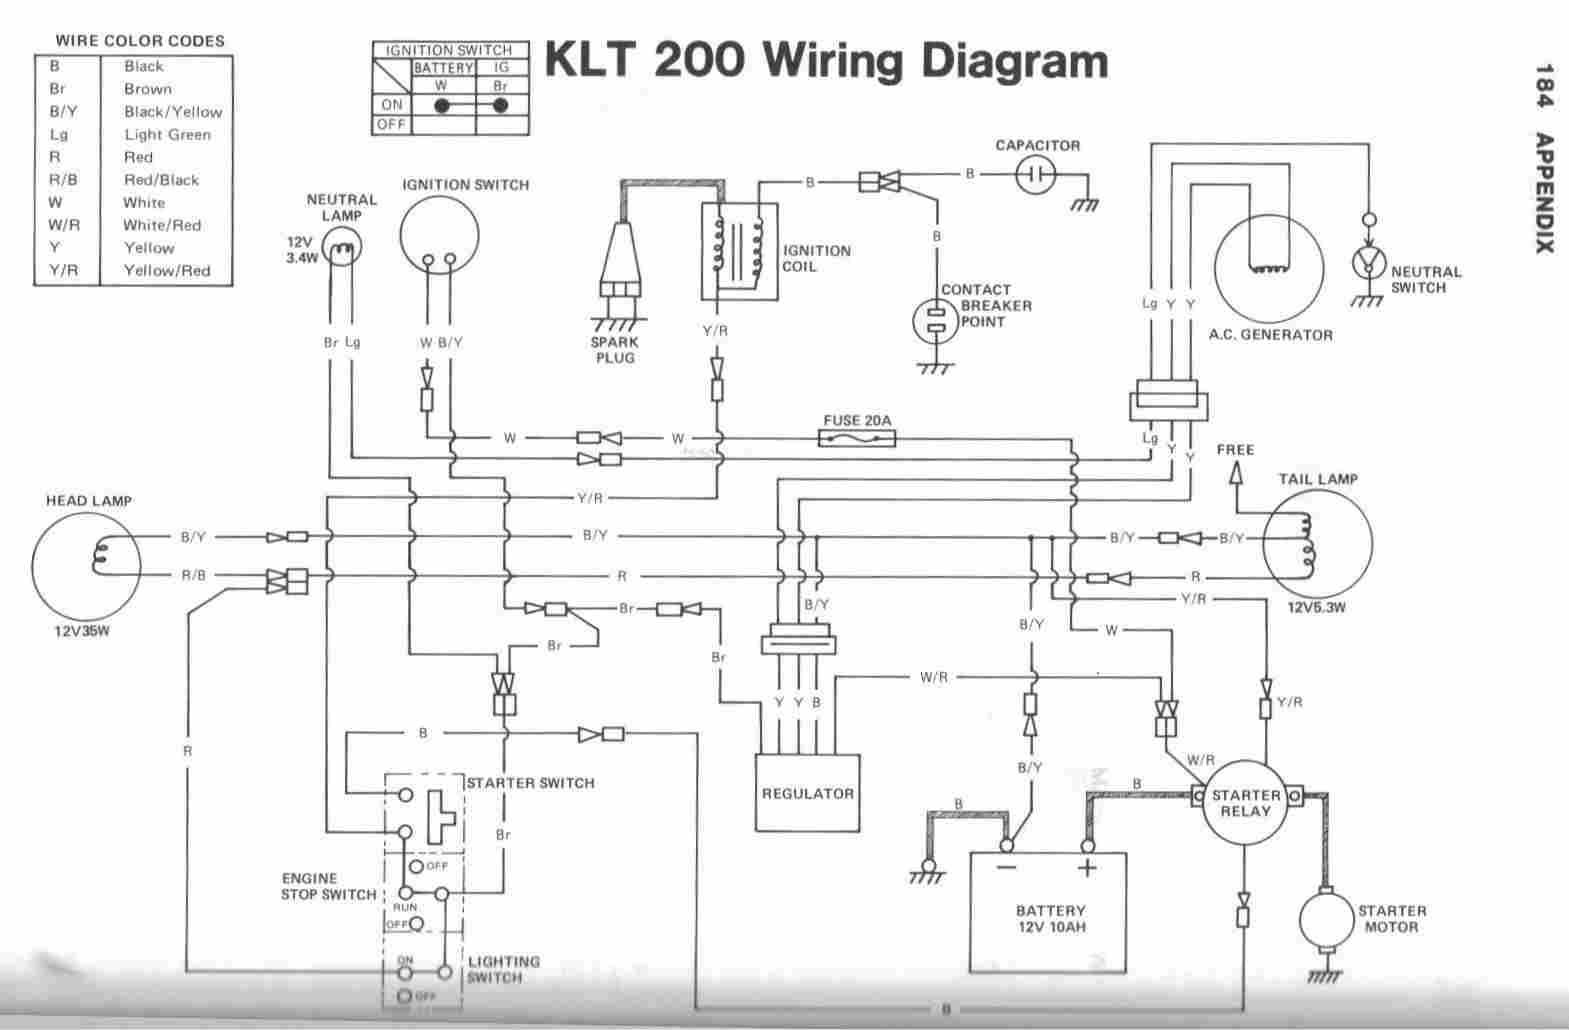 2869034594ce054a636782e5c44b61b4 easy wiring diagram simple electrical wiring \u2022 wiring diagrams j how to make wiring diagrams at honlapkeszites.co